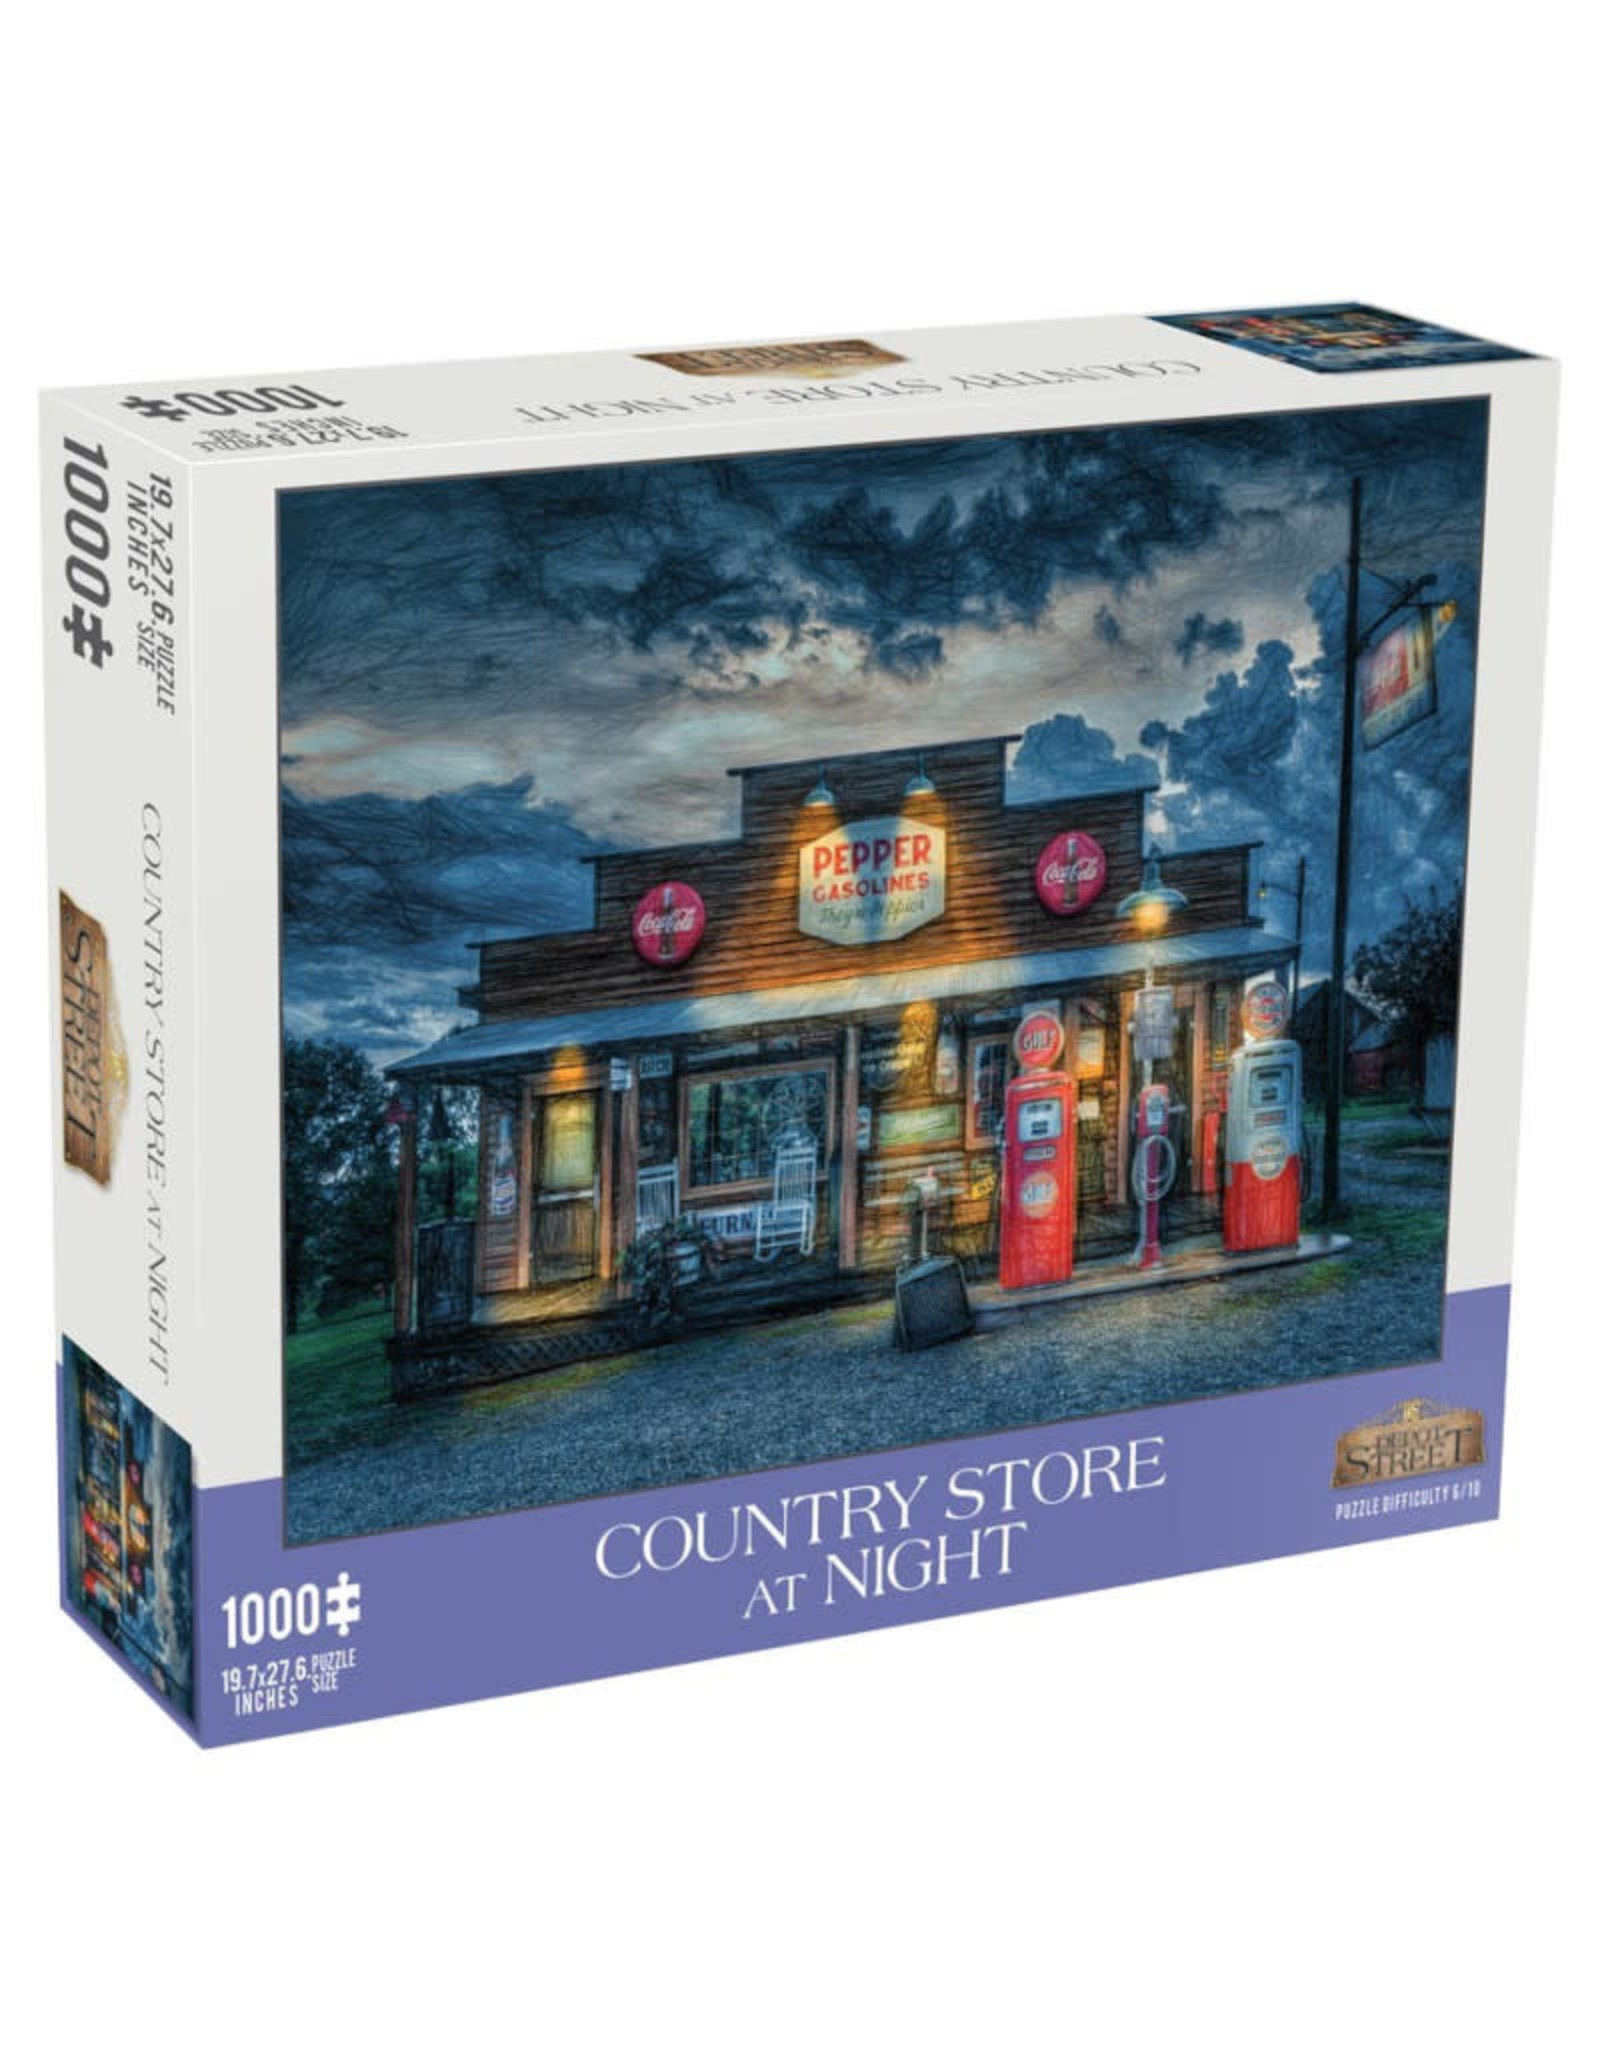 Miscellaneous Country Store at Night Puzzle 1000 PCS